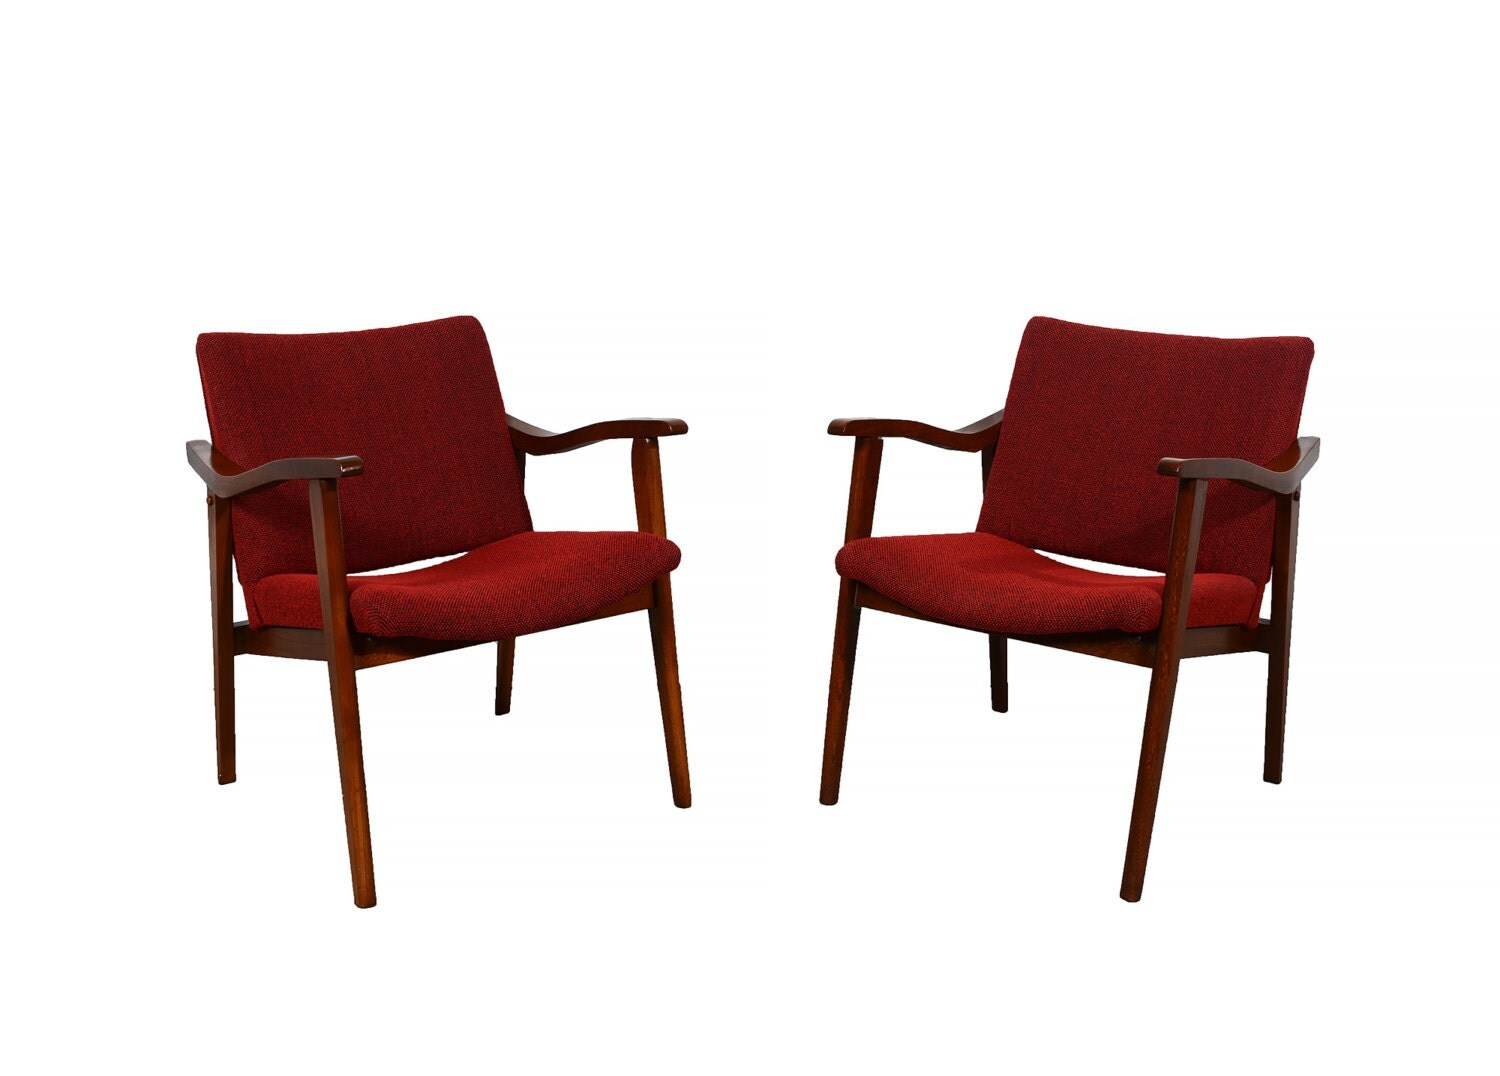 bernhard chair review computer adjustable arms lounge chairs walnut arm mid century modern